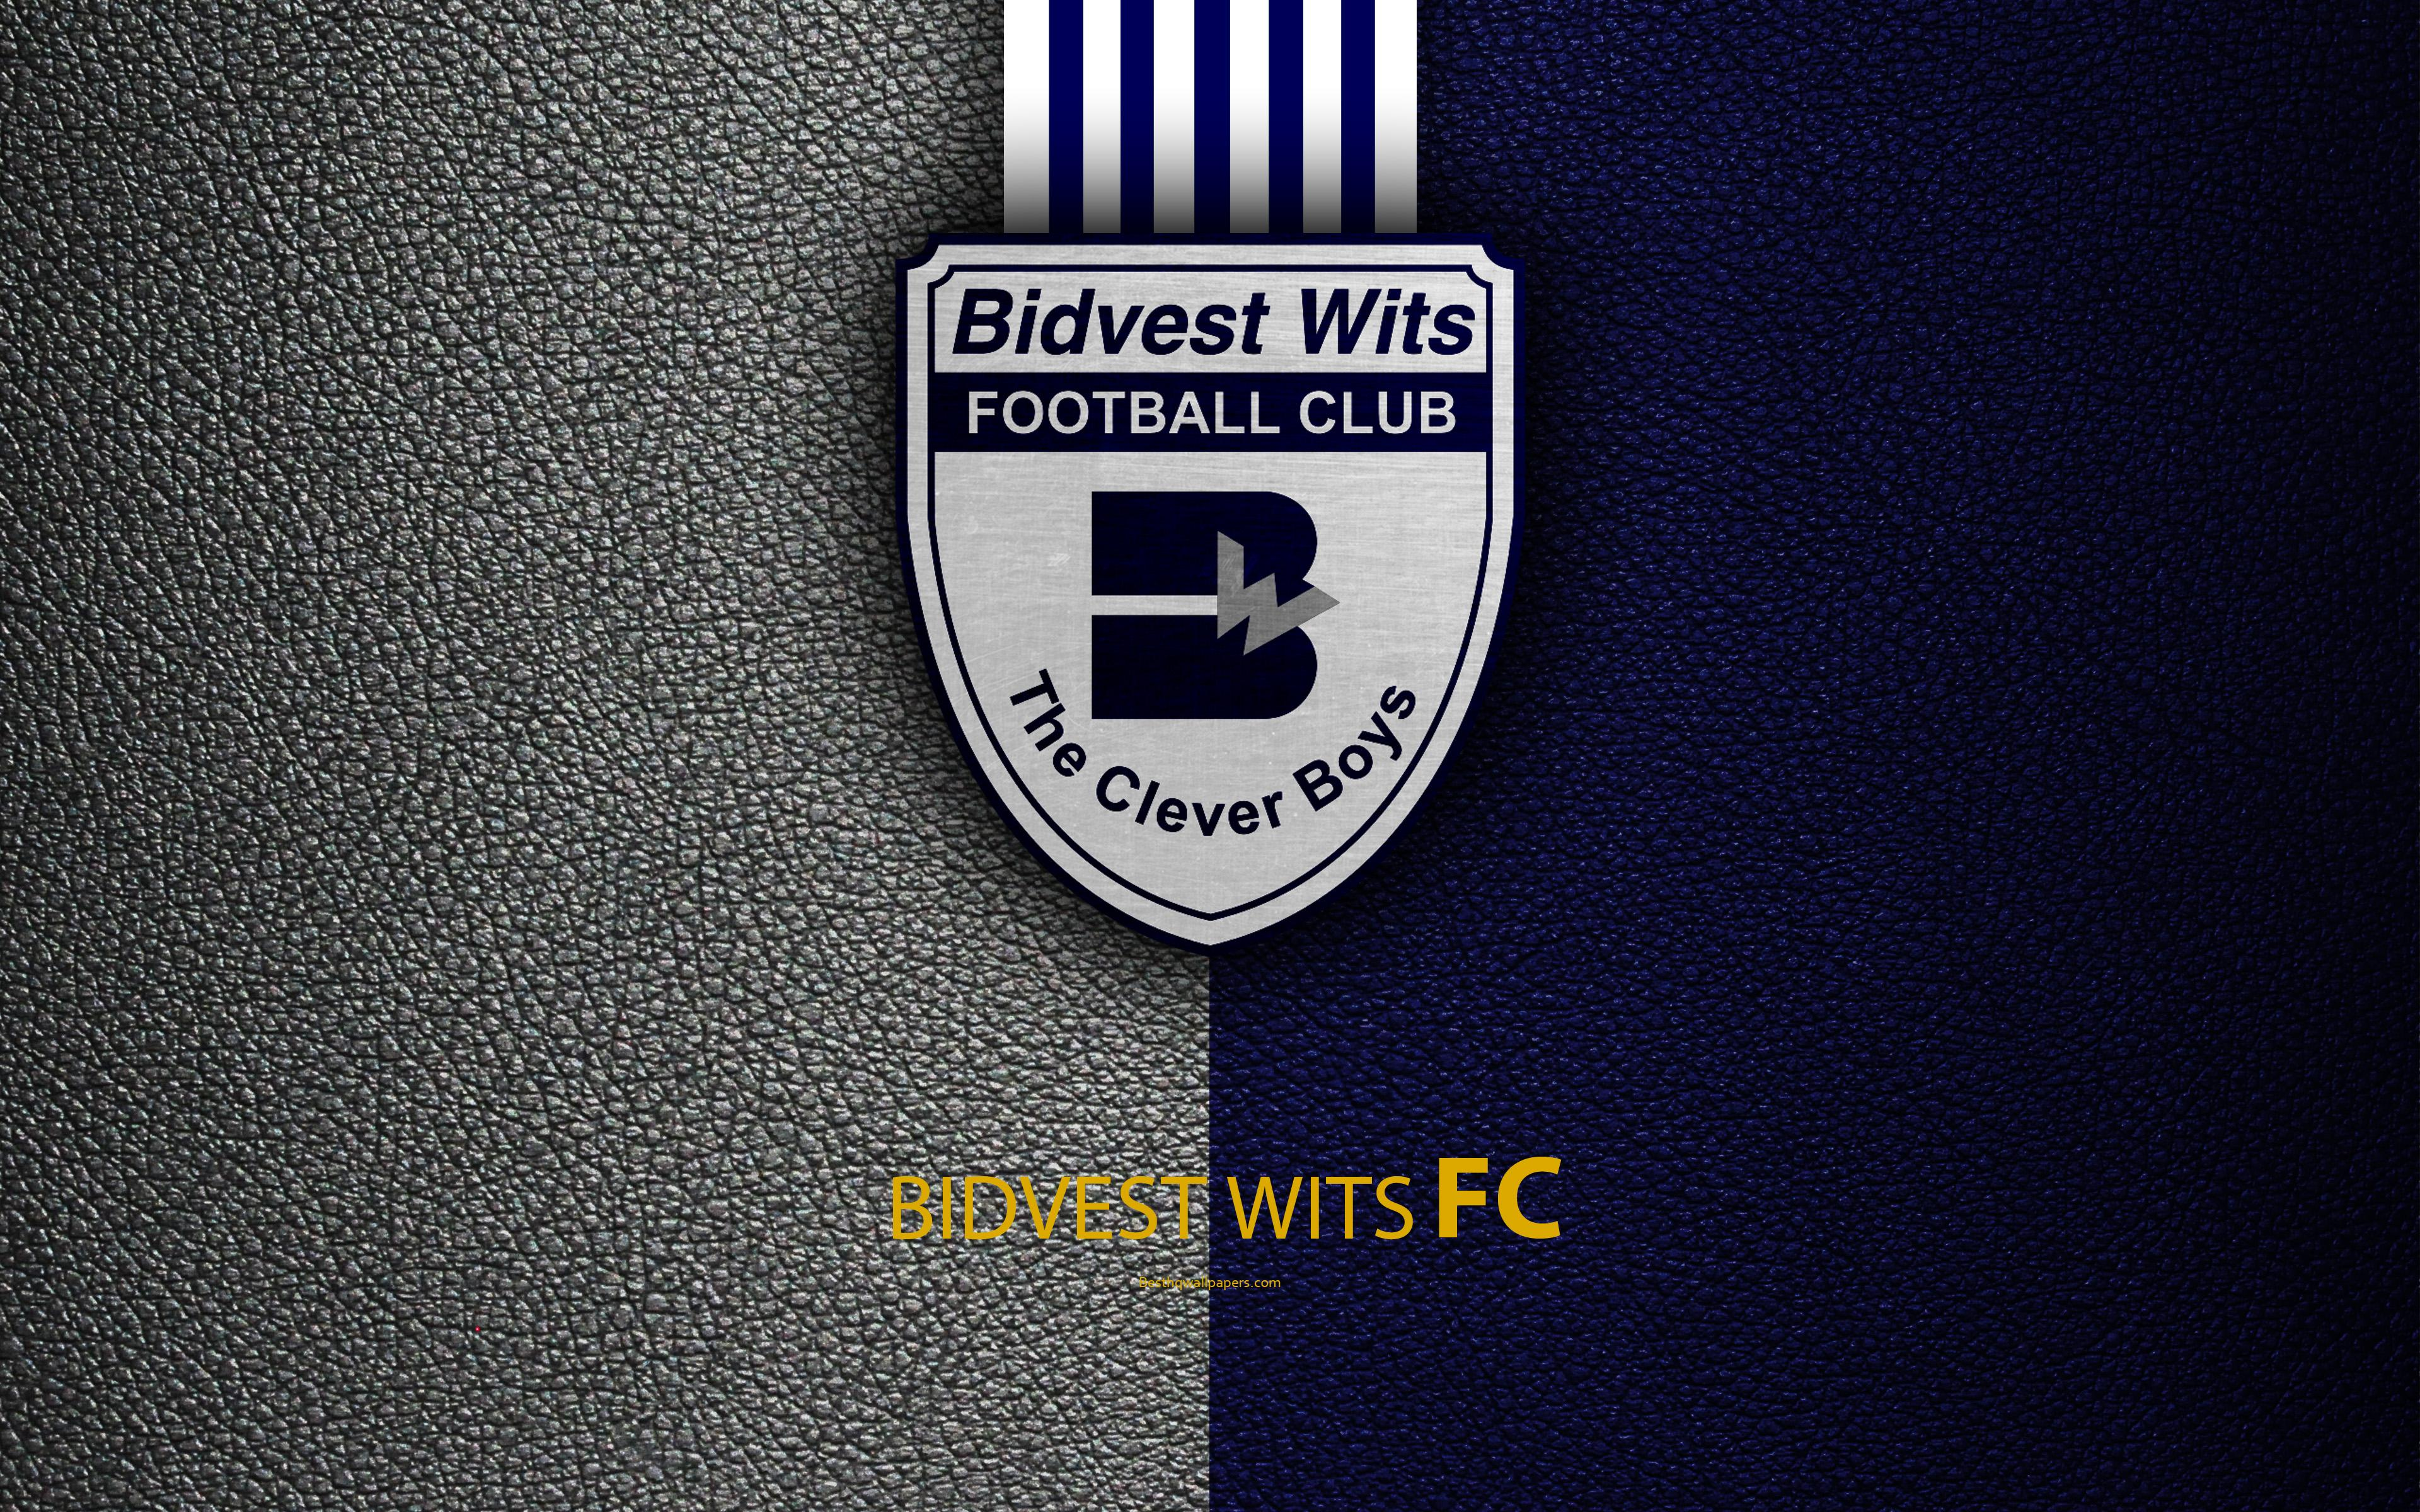 Download wallpapers Bidvest Wits FC, 4k, leather texture, logo ...